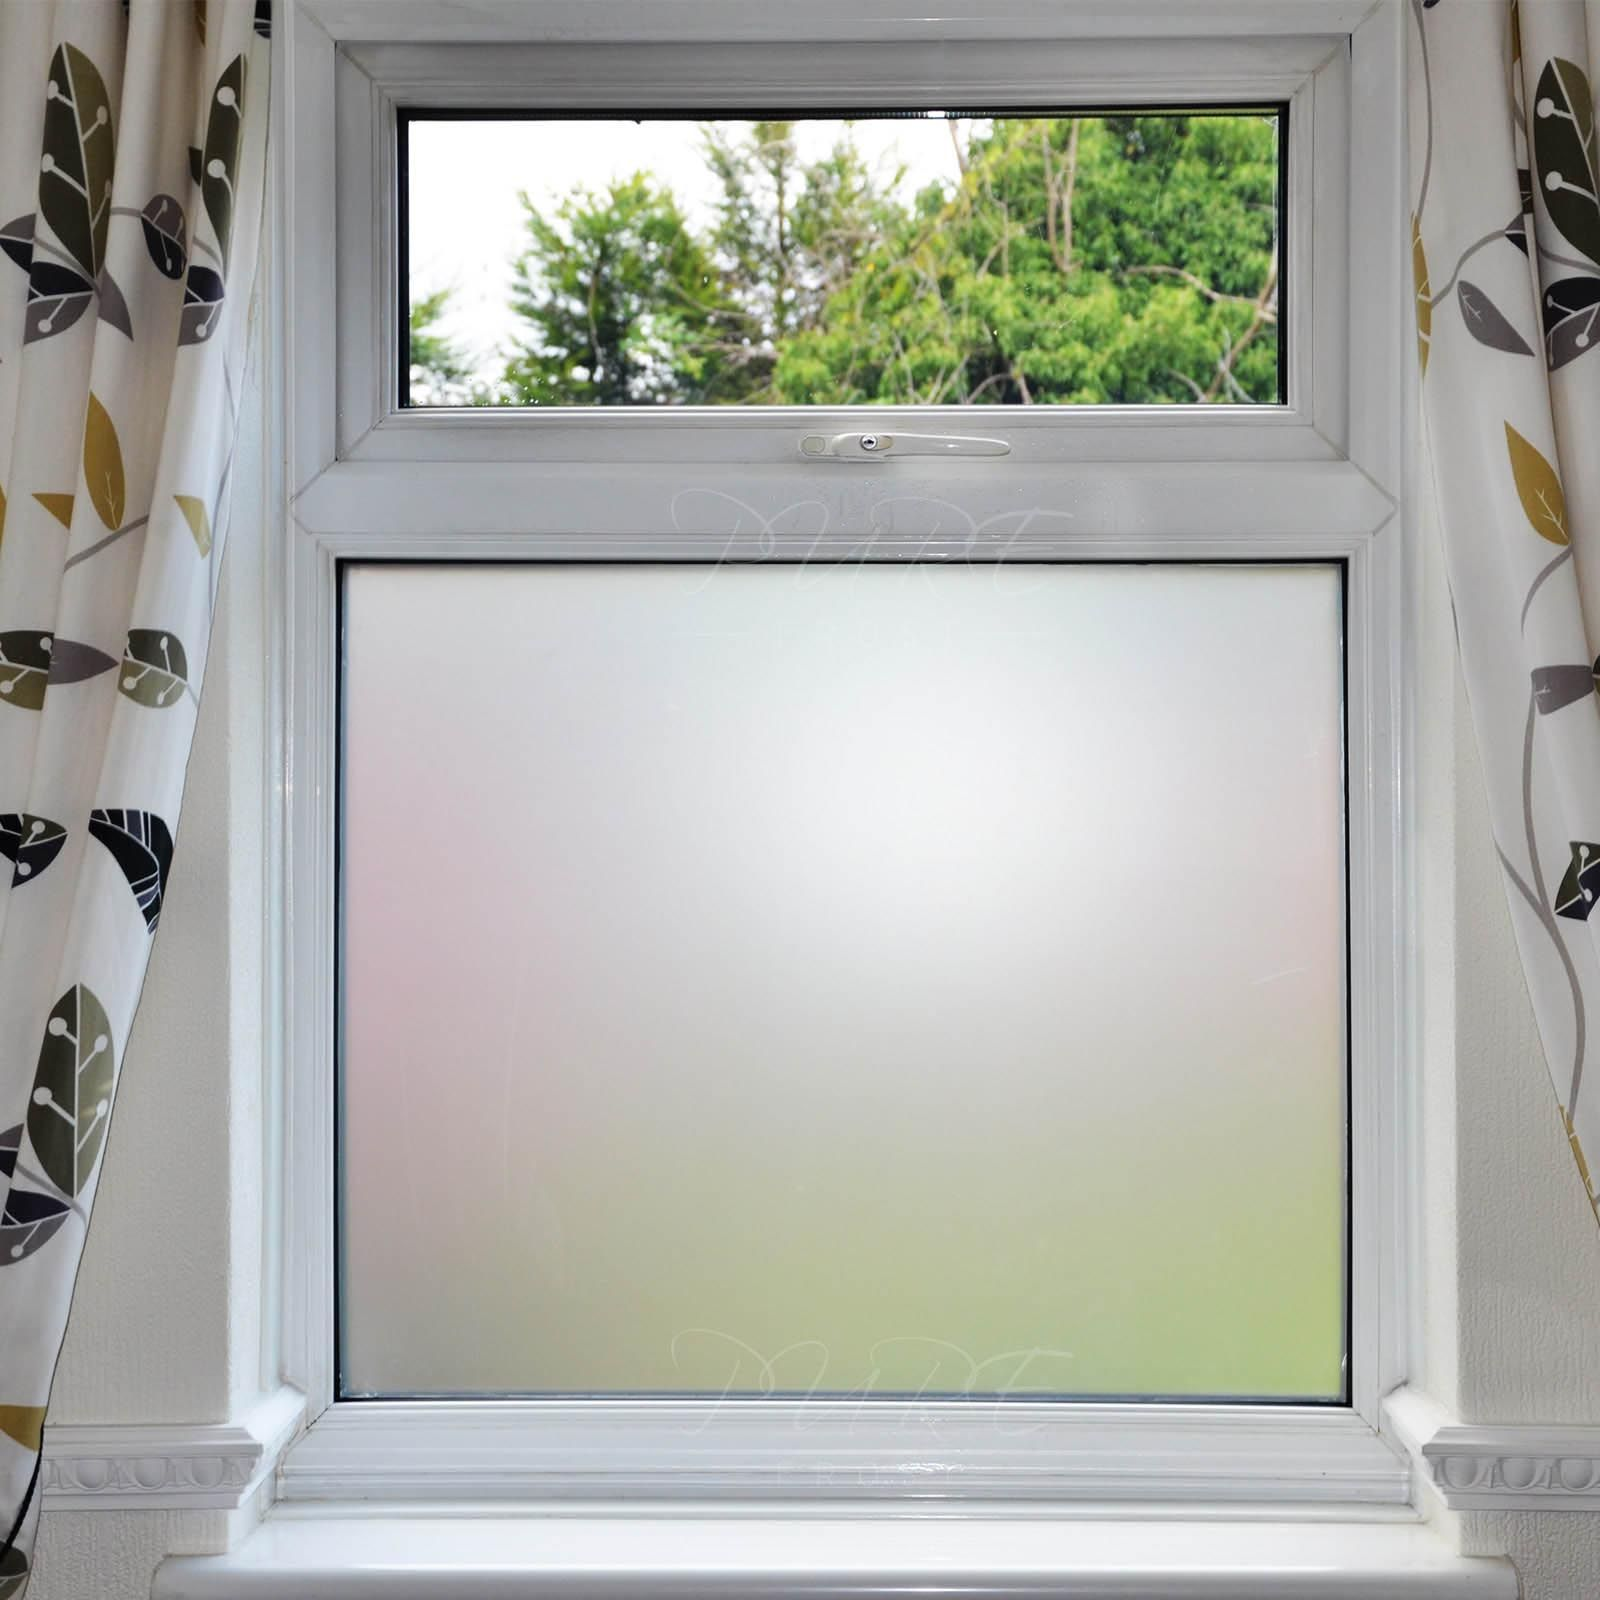 Exceptionnel Bathroom Frosted Window Film